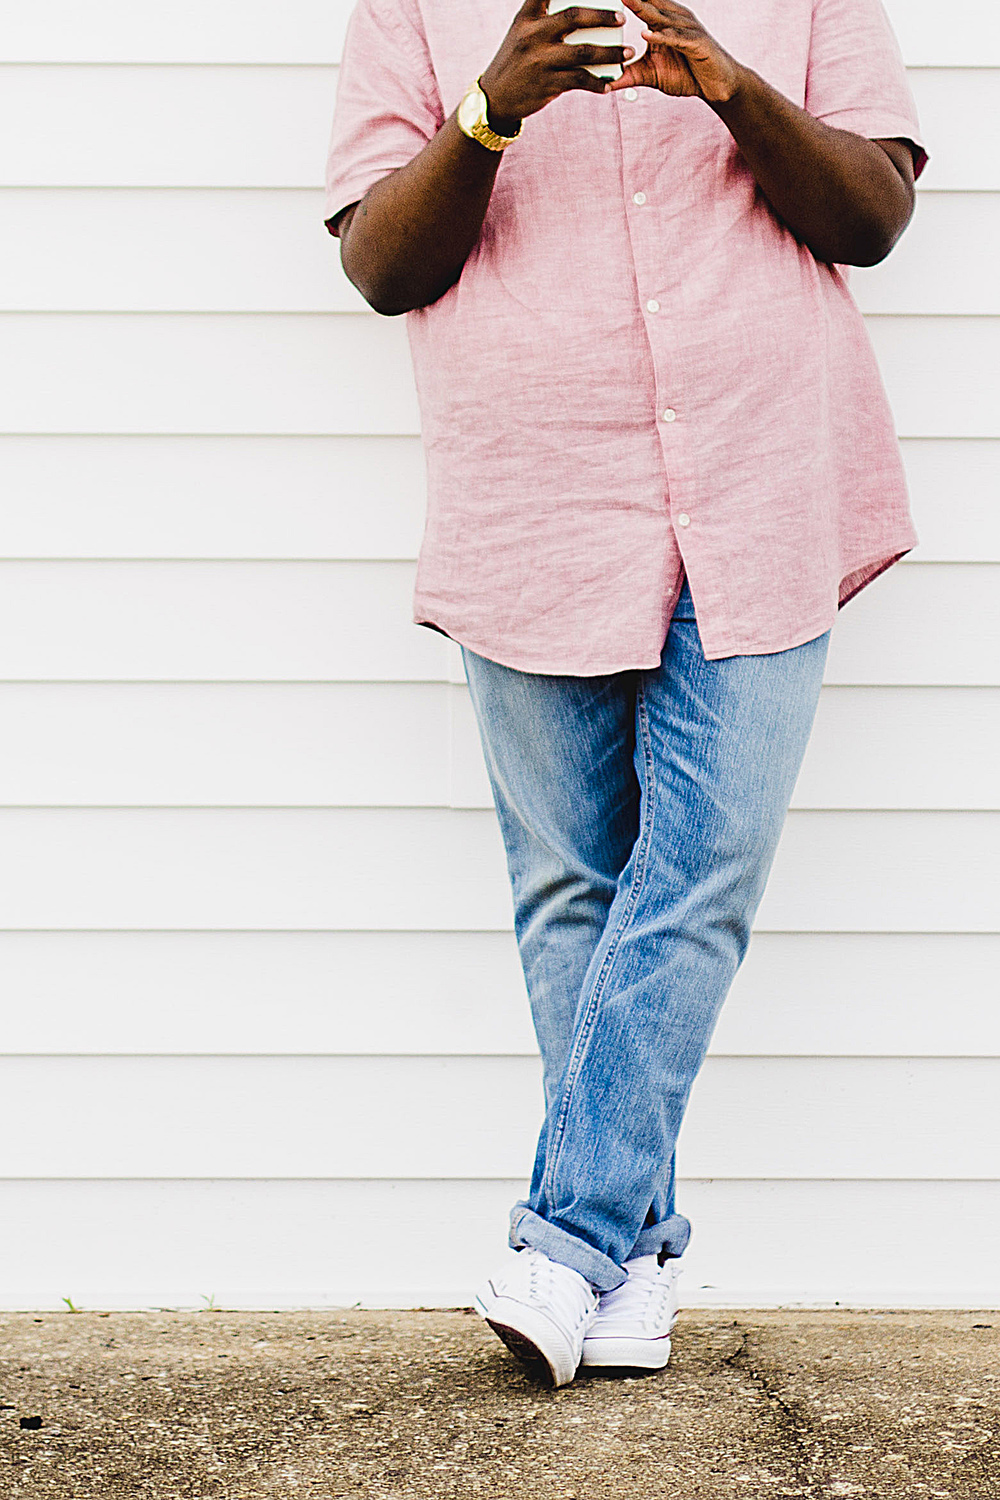 Mens Pink Mandarin / Band Collar Shirt + Light Denim + Chuck Taylors | Mens Style Blog | Body Positive Style | Greenville NC Photographer | Bryant Tyson Photography | www.memoriesbybryant.com